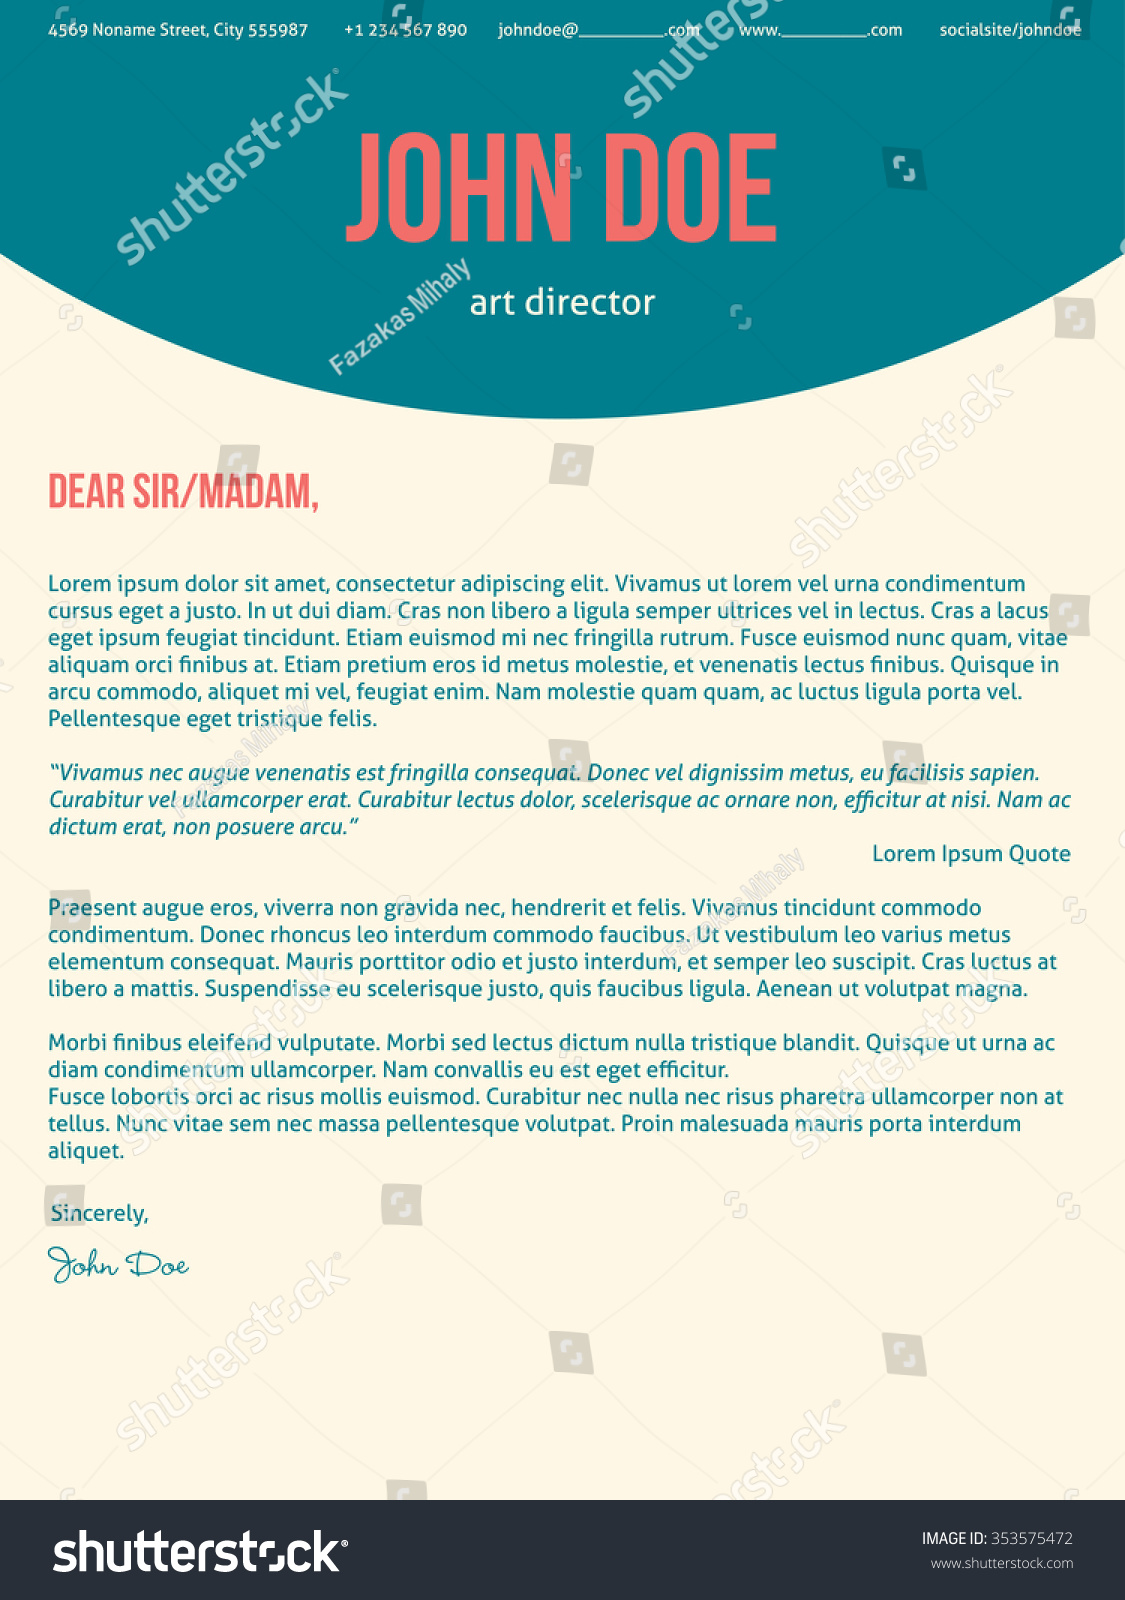 cover letter cv  resume format download pdf also cover letter cv bartender cover letter sample modern cover letter cv resumetemplate design in turquoise